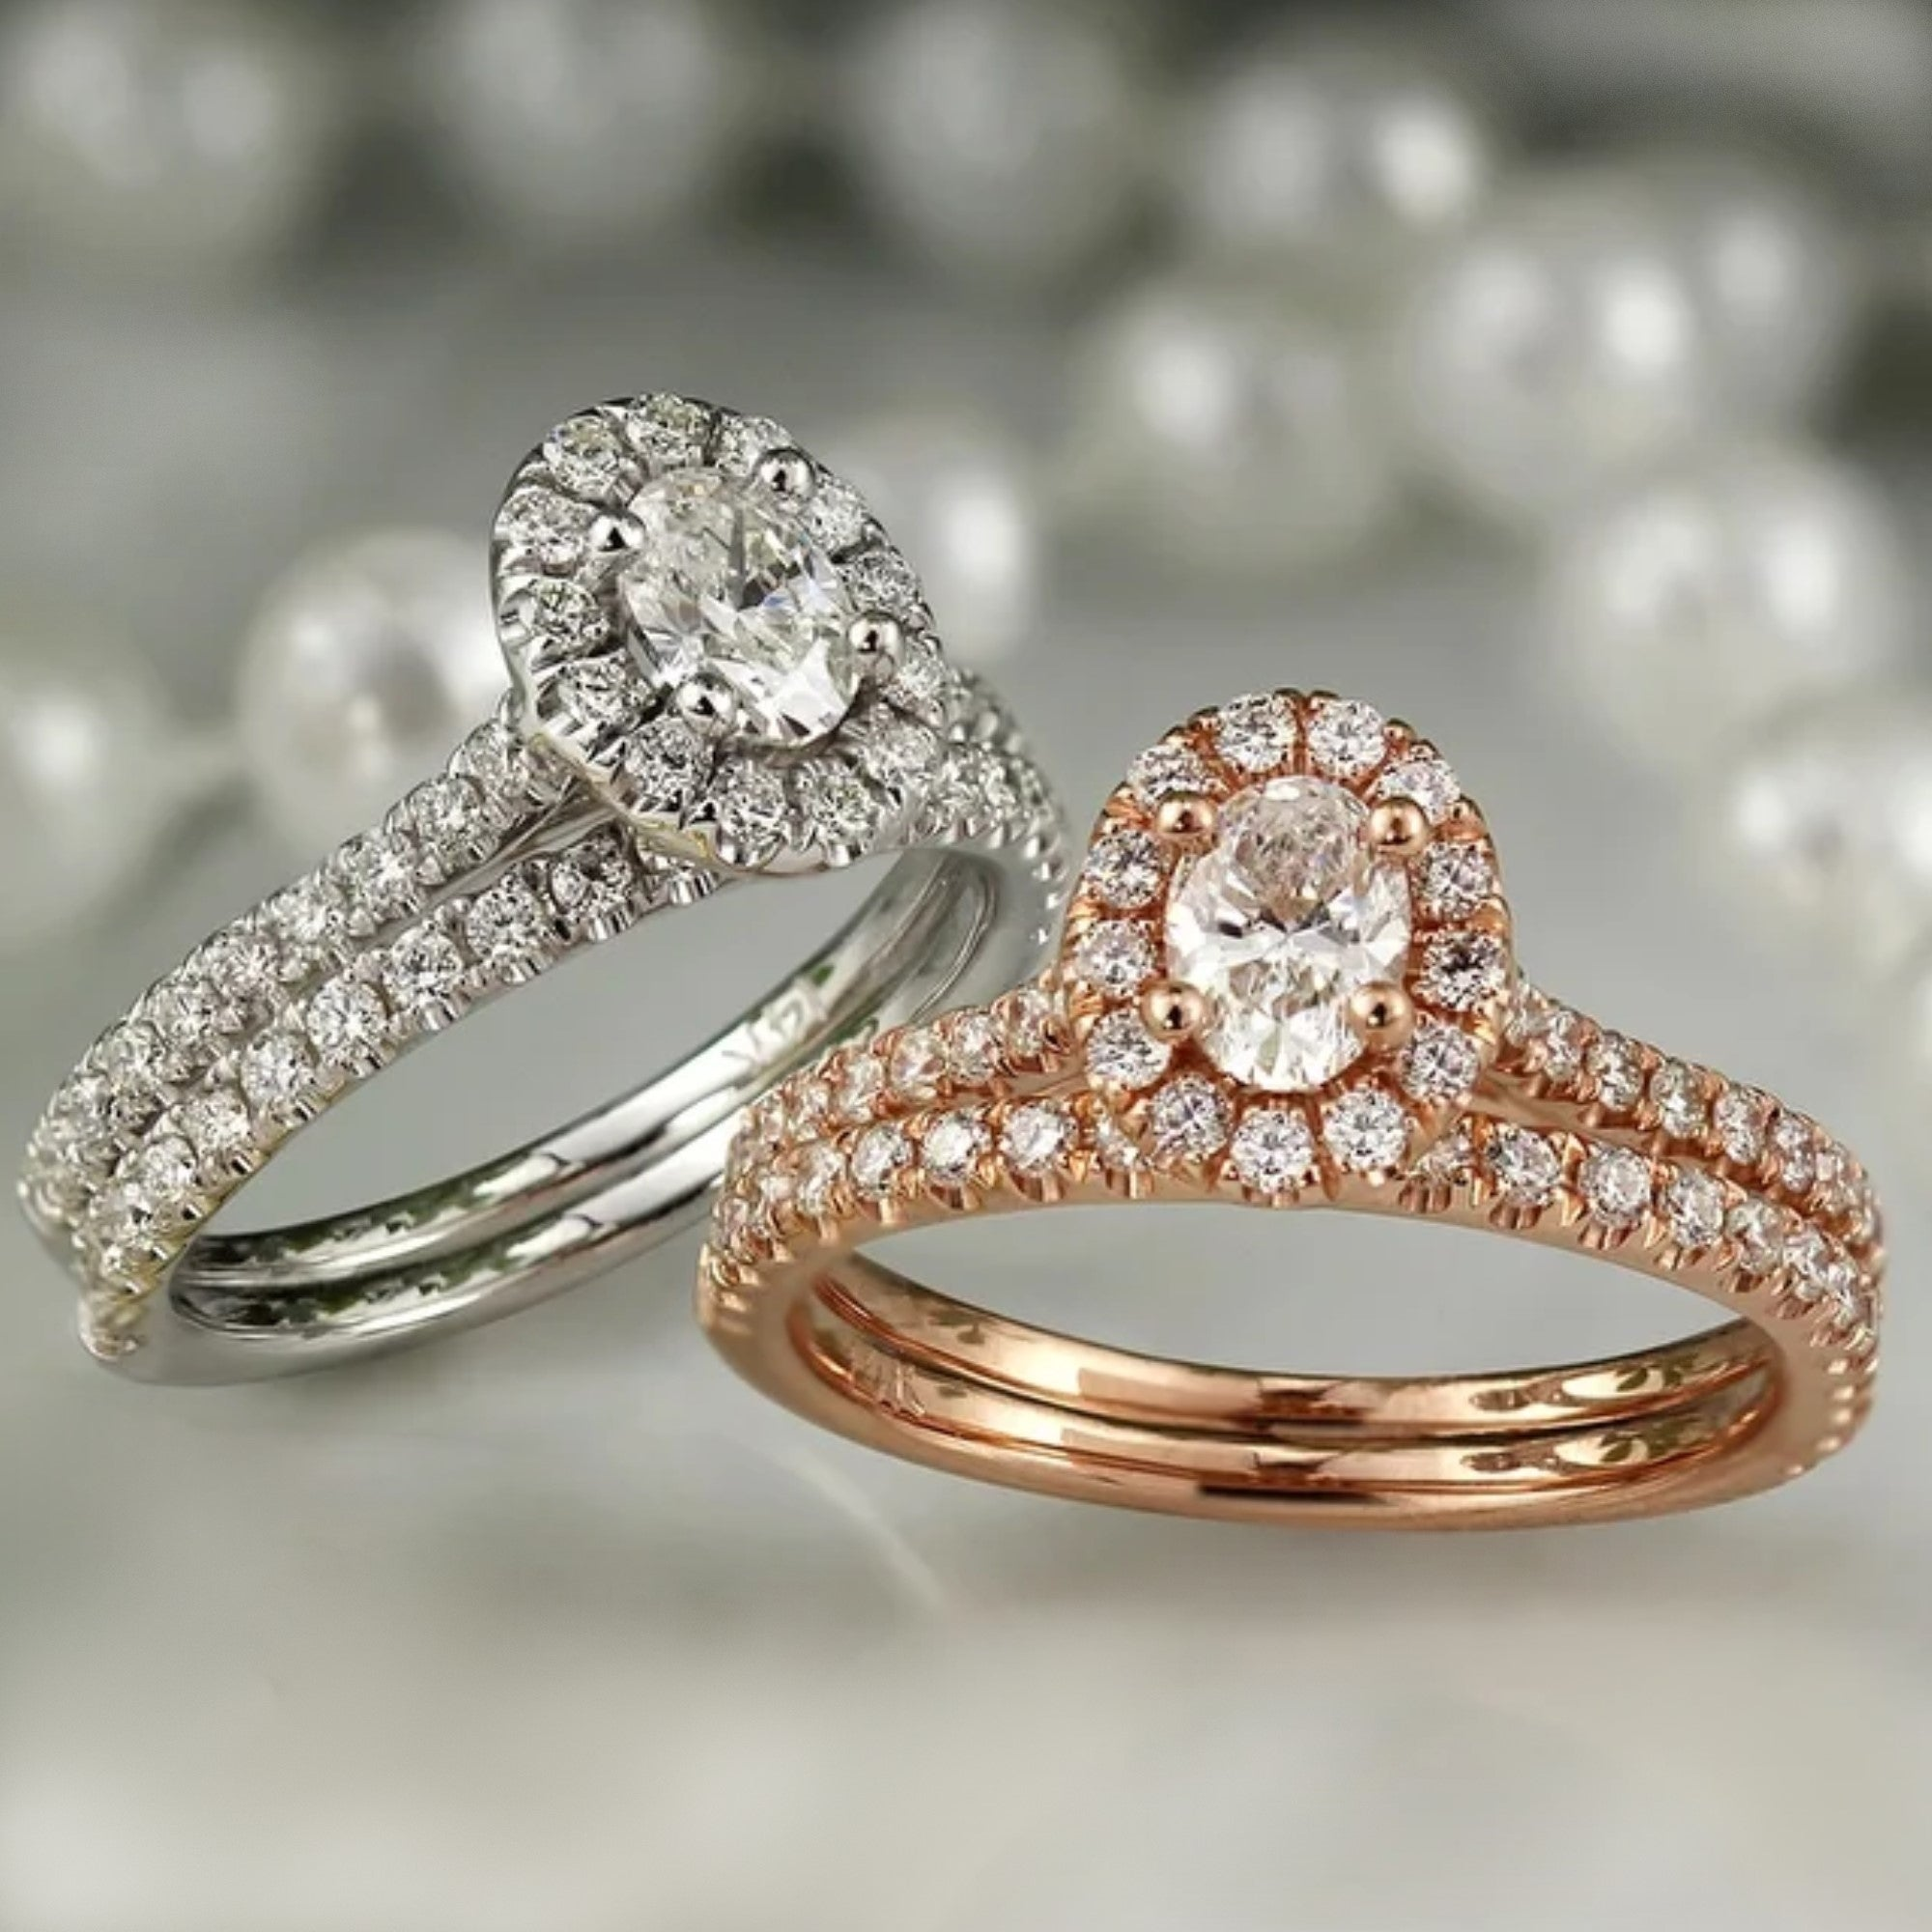 Next Trend For Rings